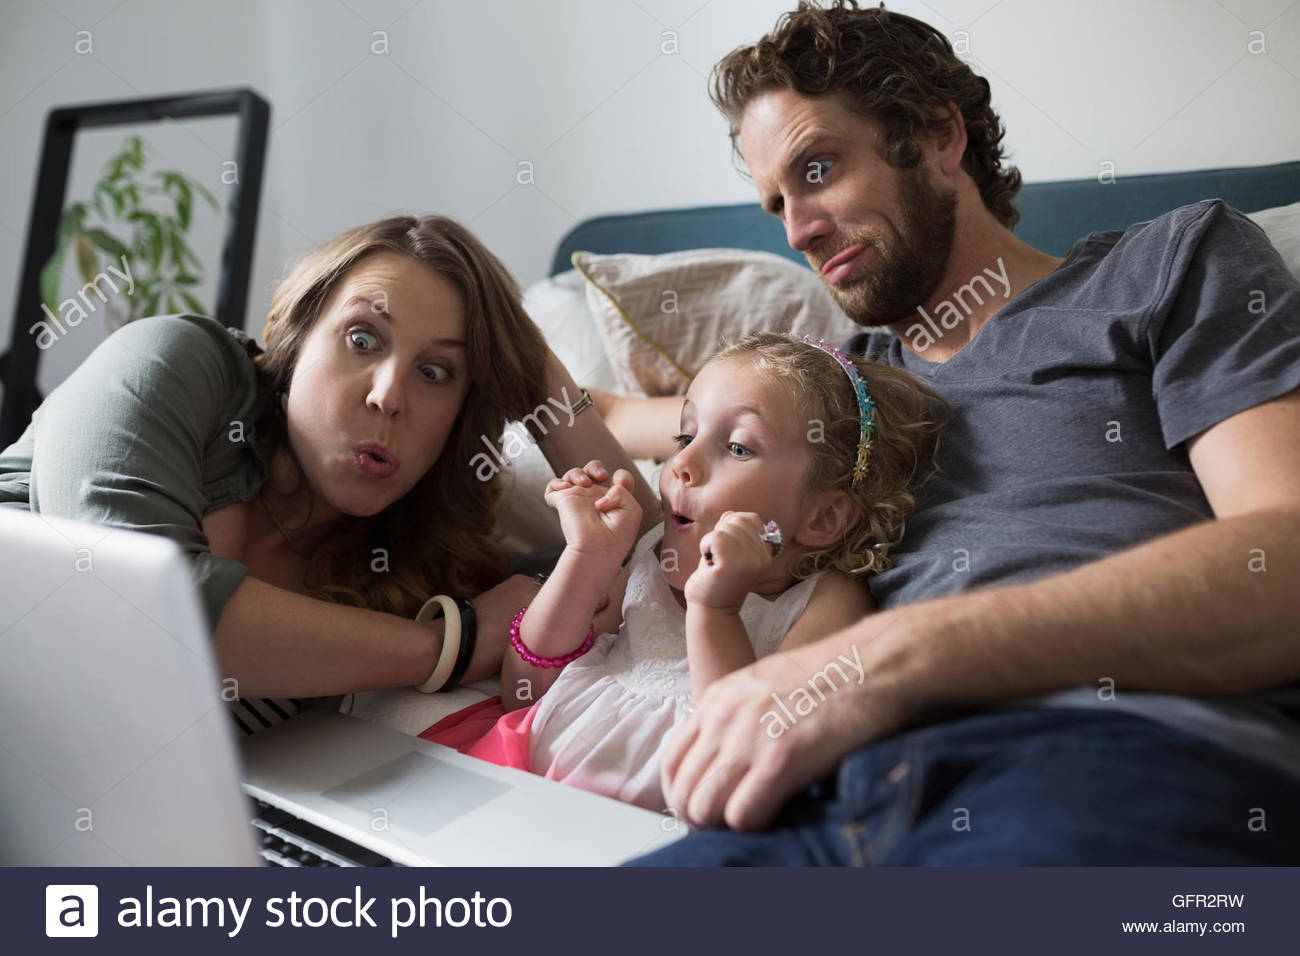 Jeune famille making faces chat vidéo avec laptop on bed Photo Stock